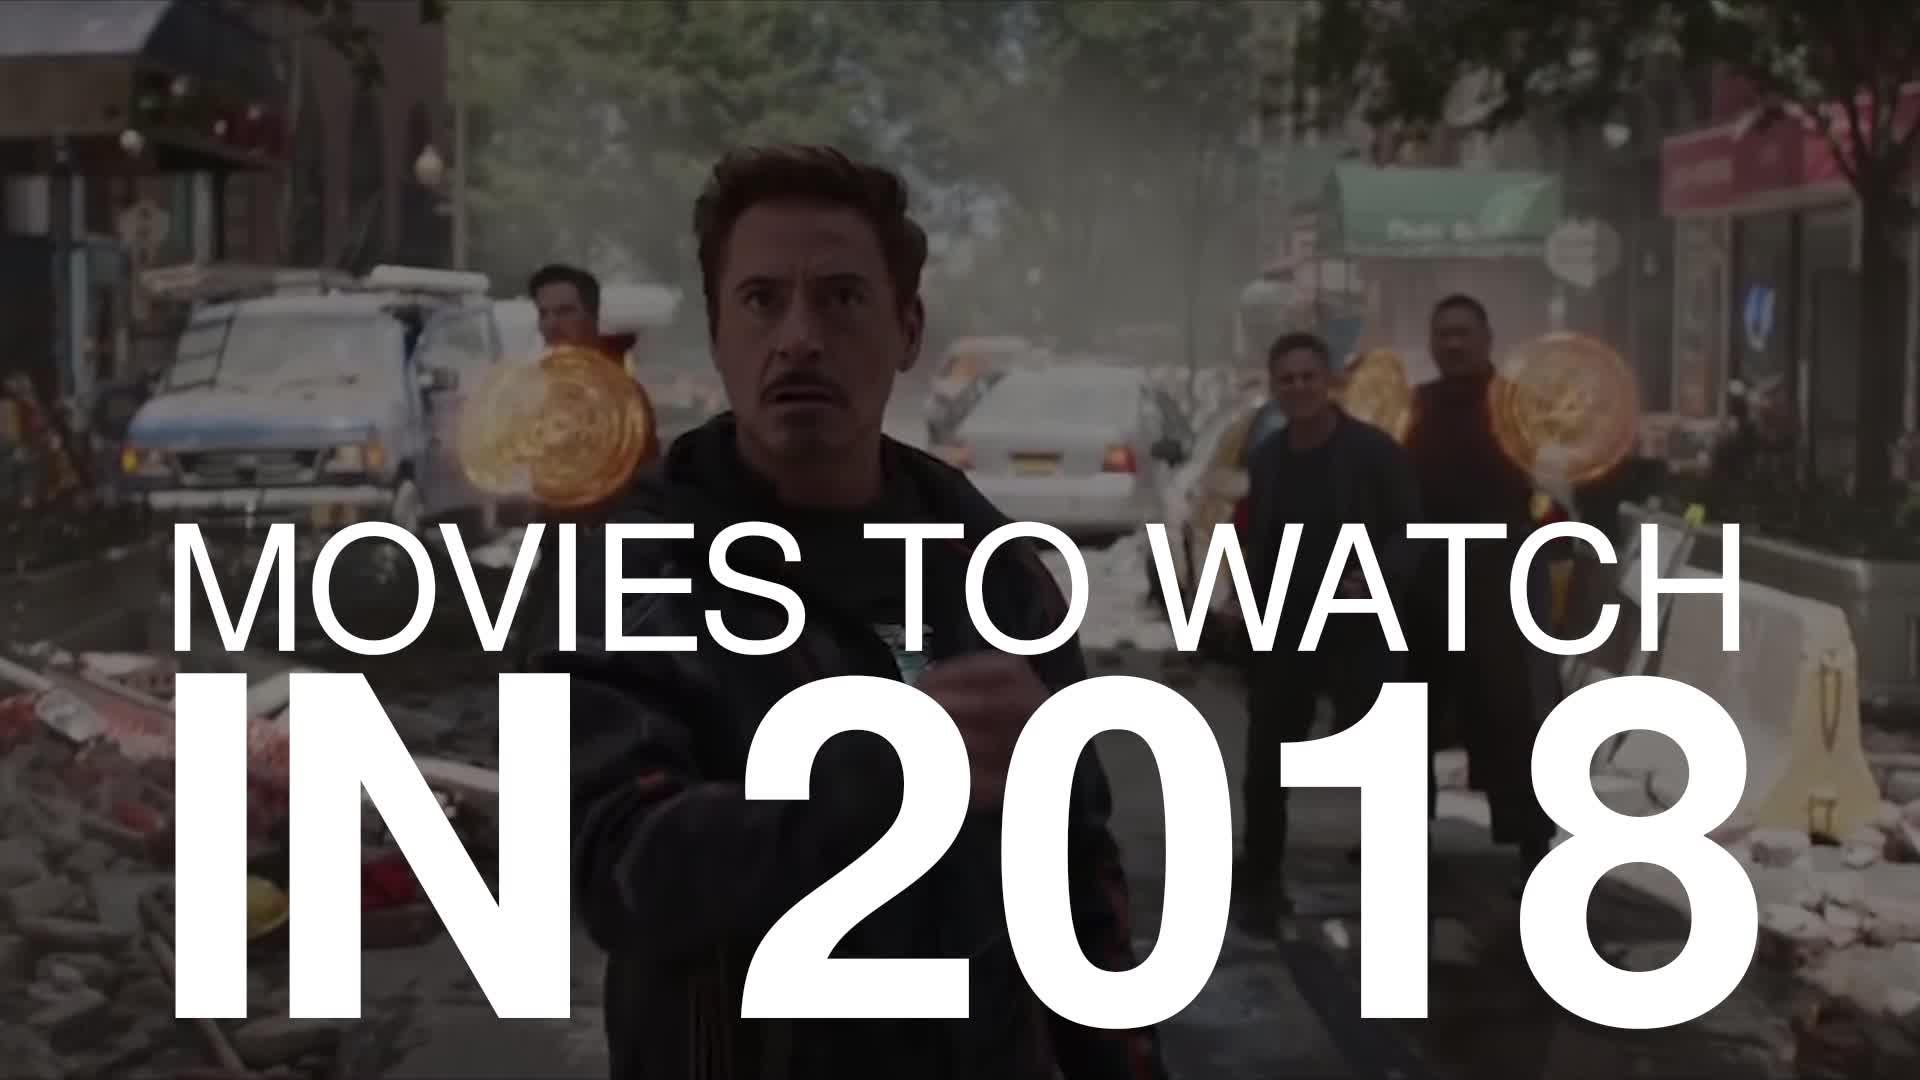 Movies to watch in 2018